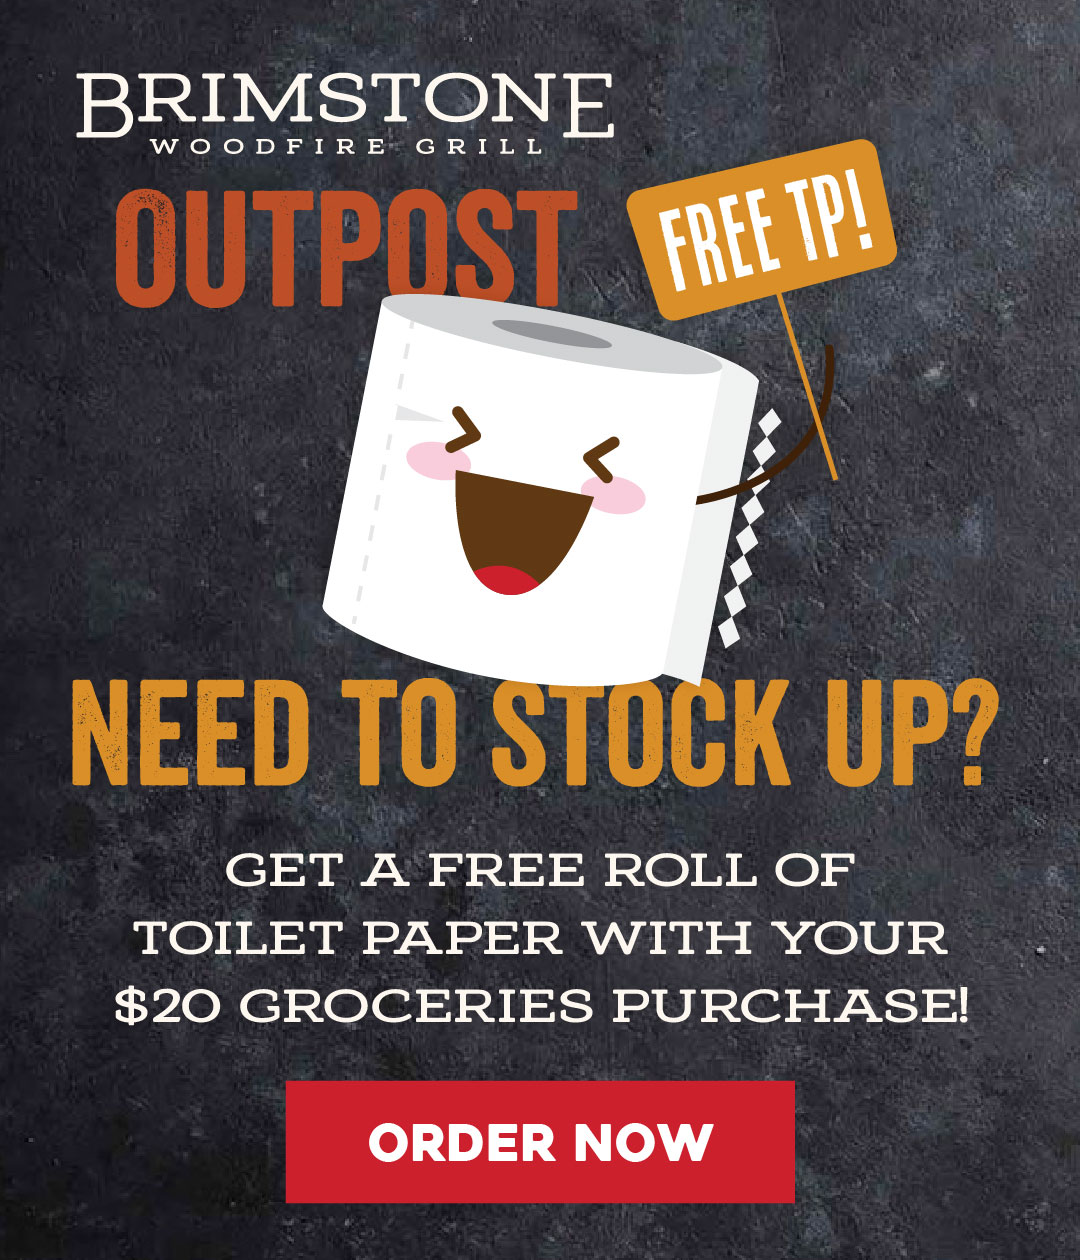 Brimstone Outpost Social